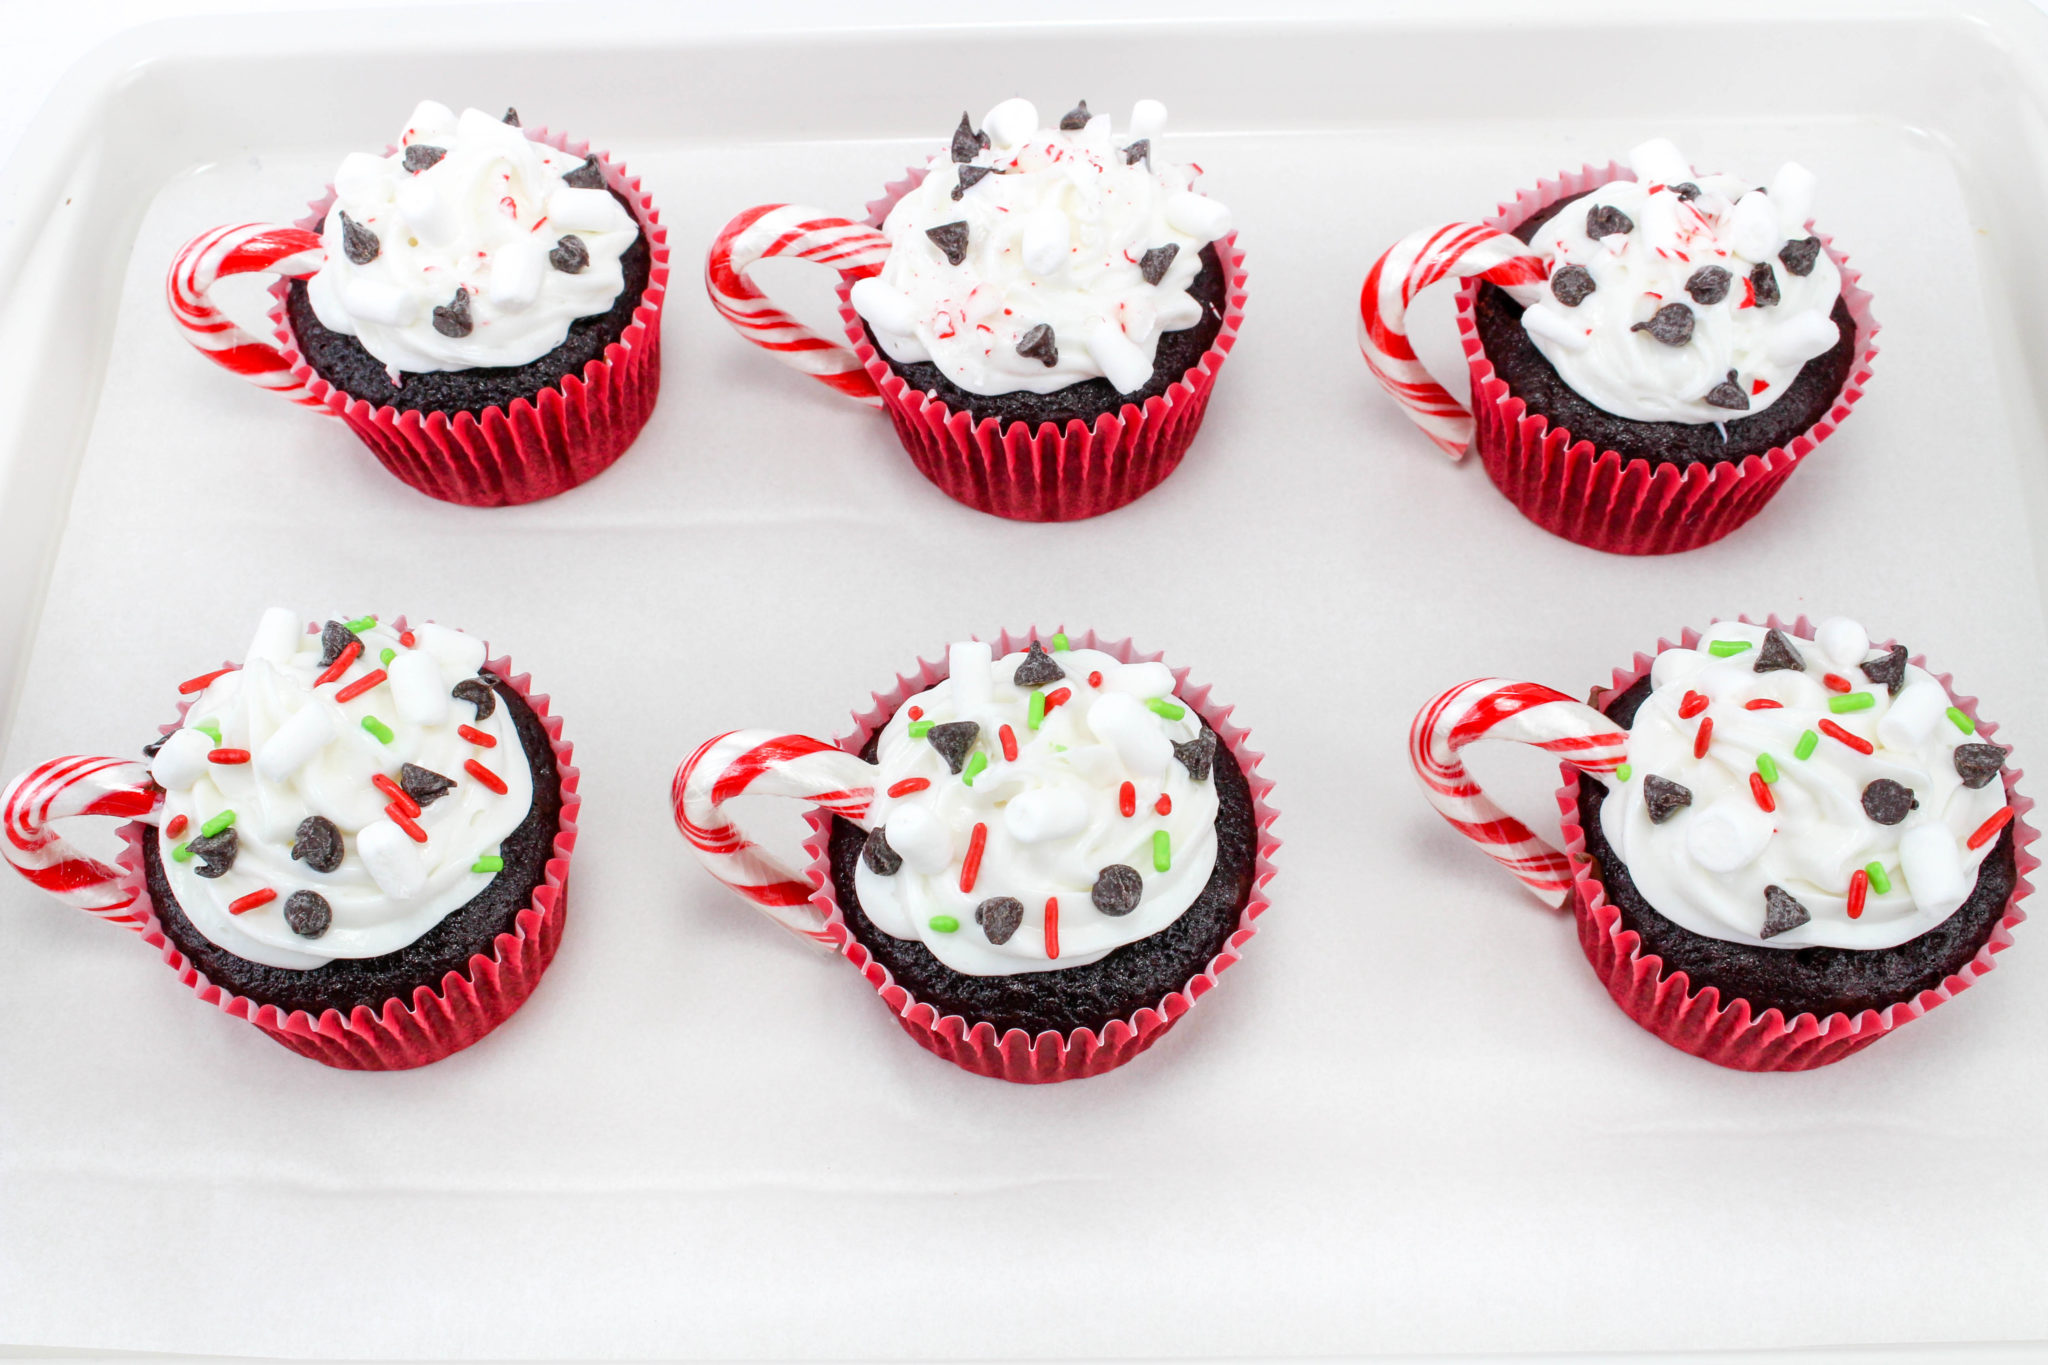 Wow your holiday guests with these Hot Chocolate Cupcakes! They are easy to make and will surely be everyone's favorite dessert at Christmas dinner!